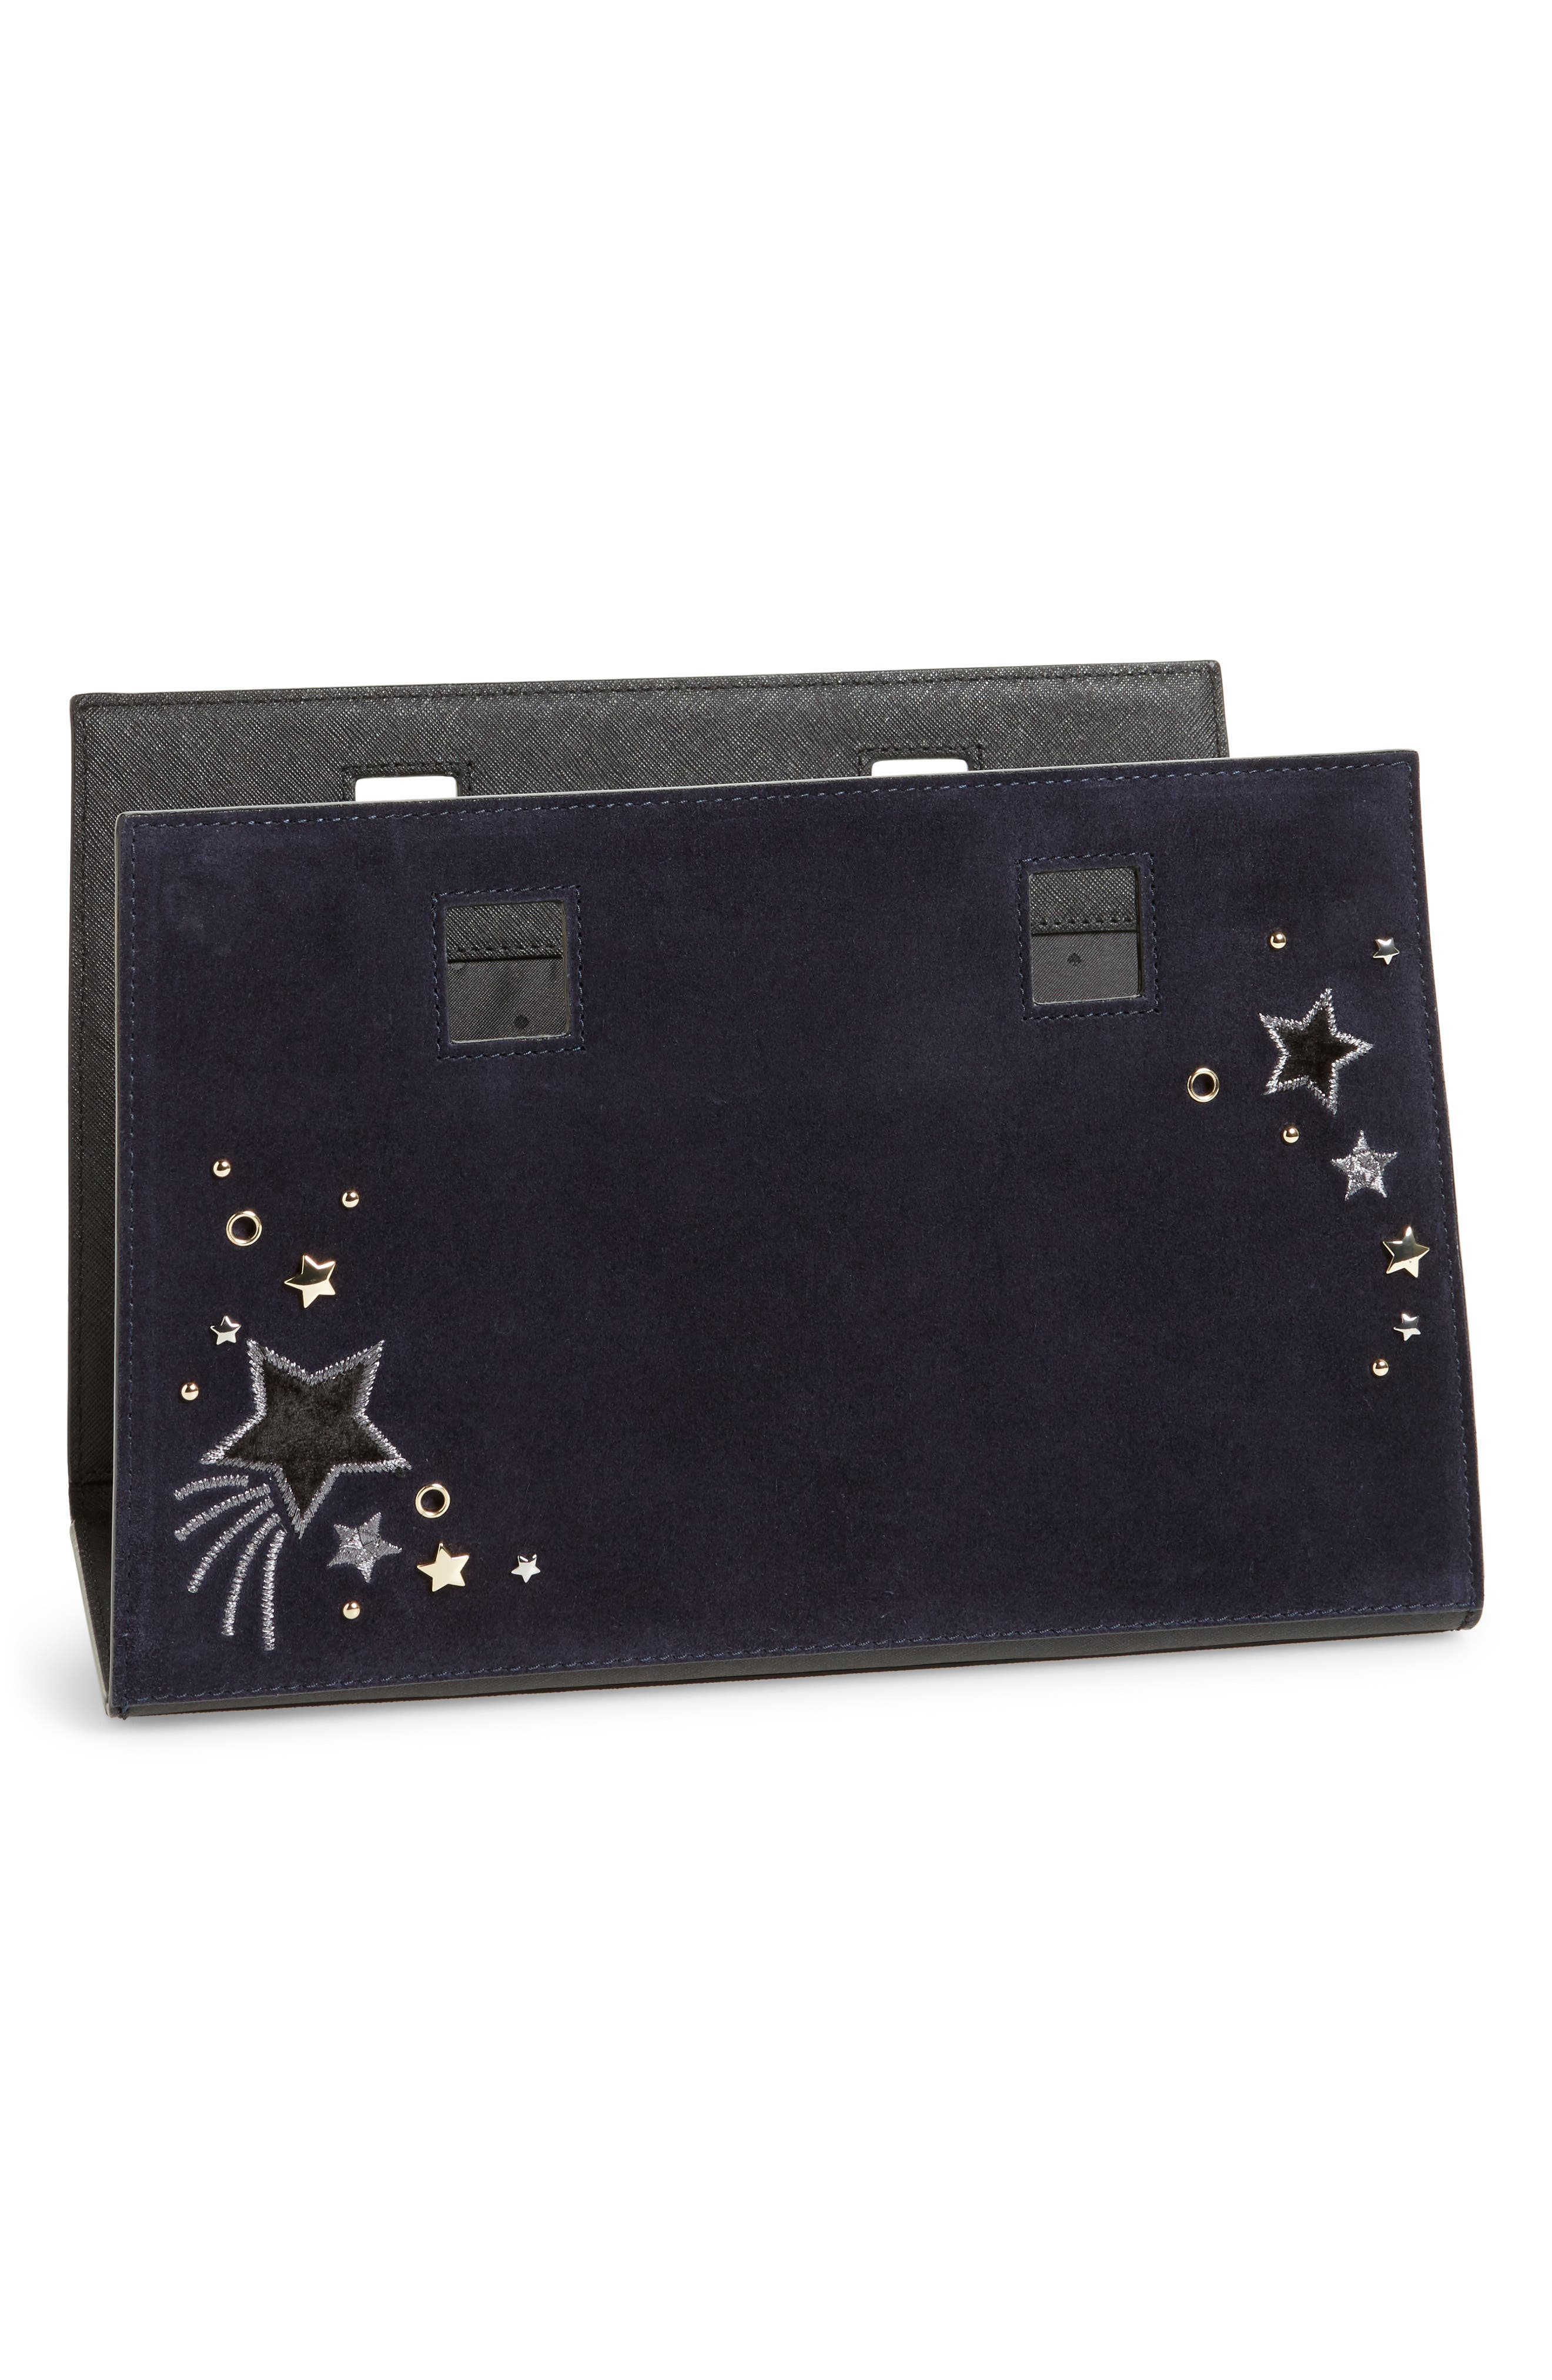 Alternate Image 1 Selected - kate spade new york make it mine star embellished leather snap-on accent flap